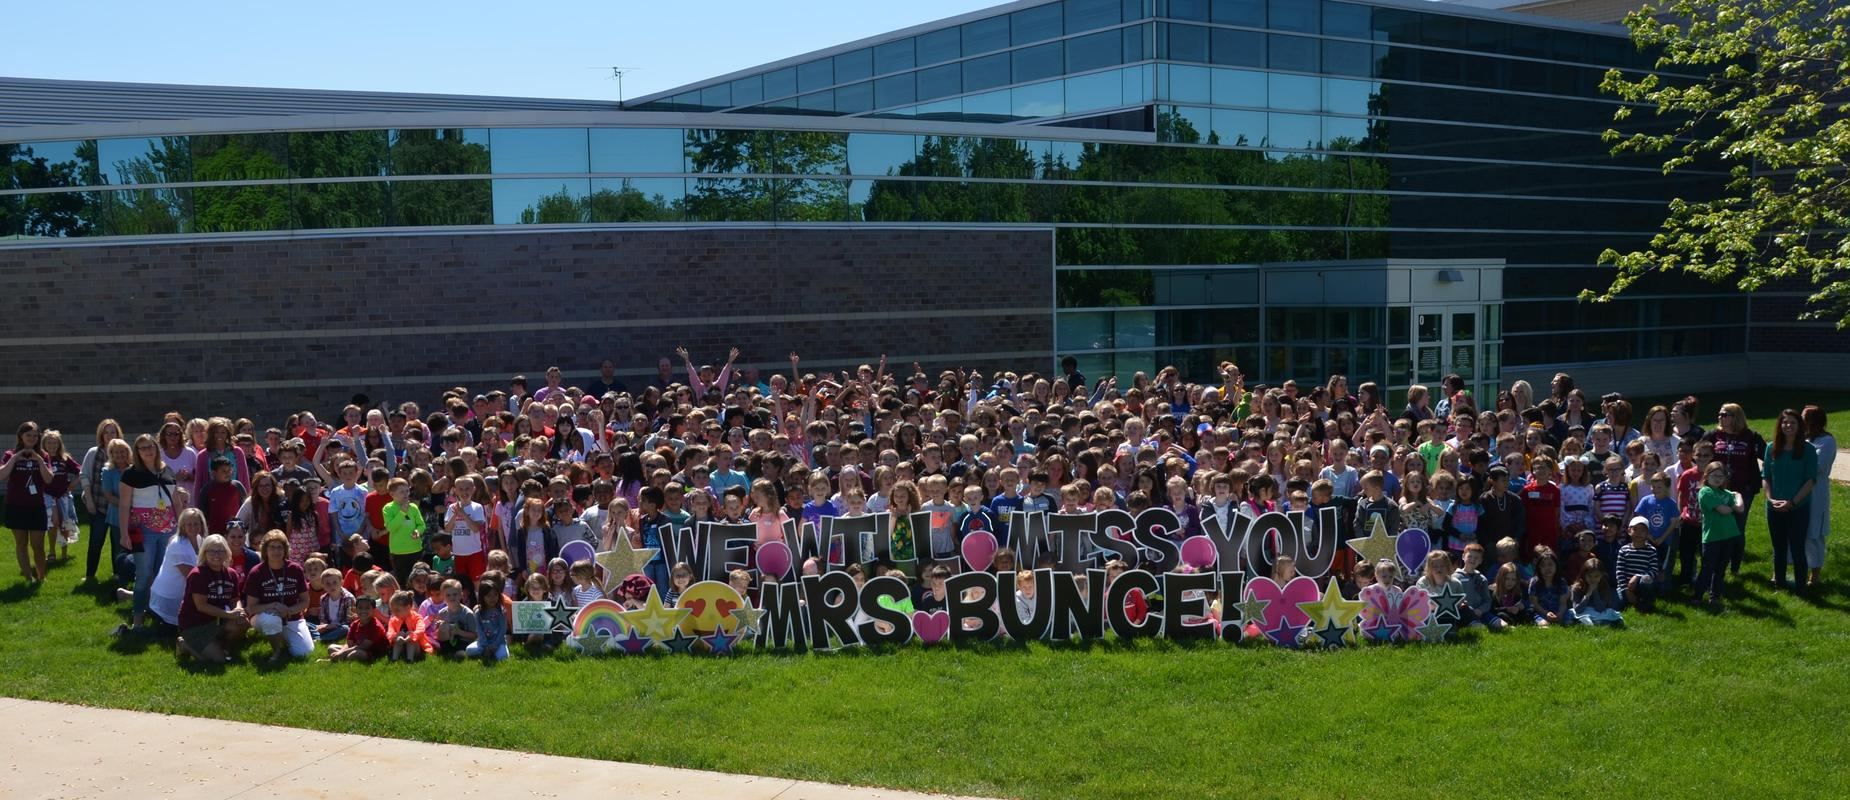 student body stands behind sign that says We Will Miss You Mrs. Bunce on lawn in front of building